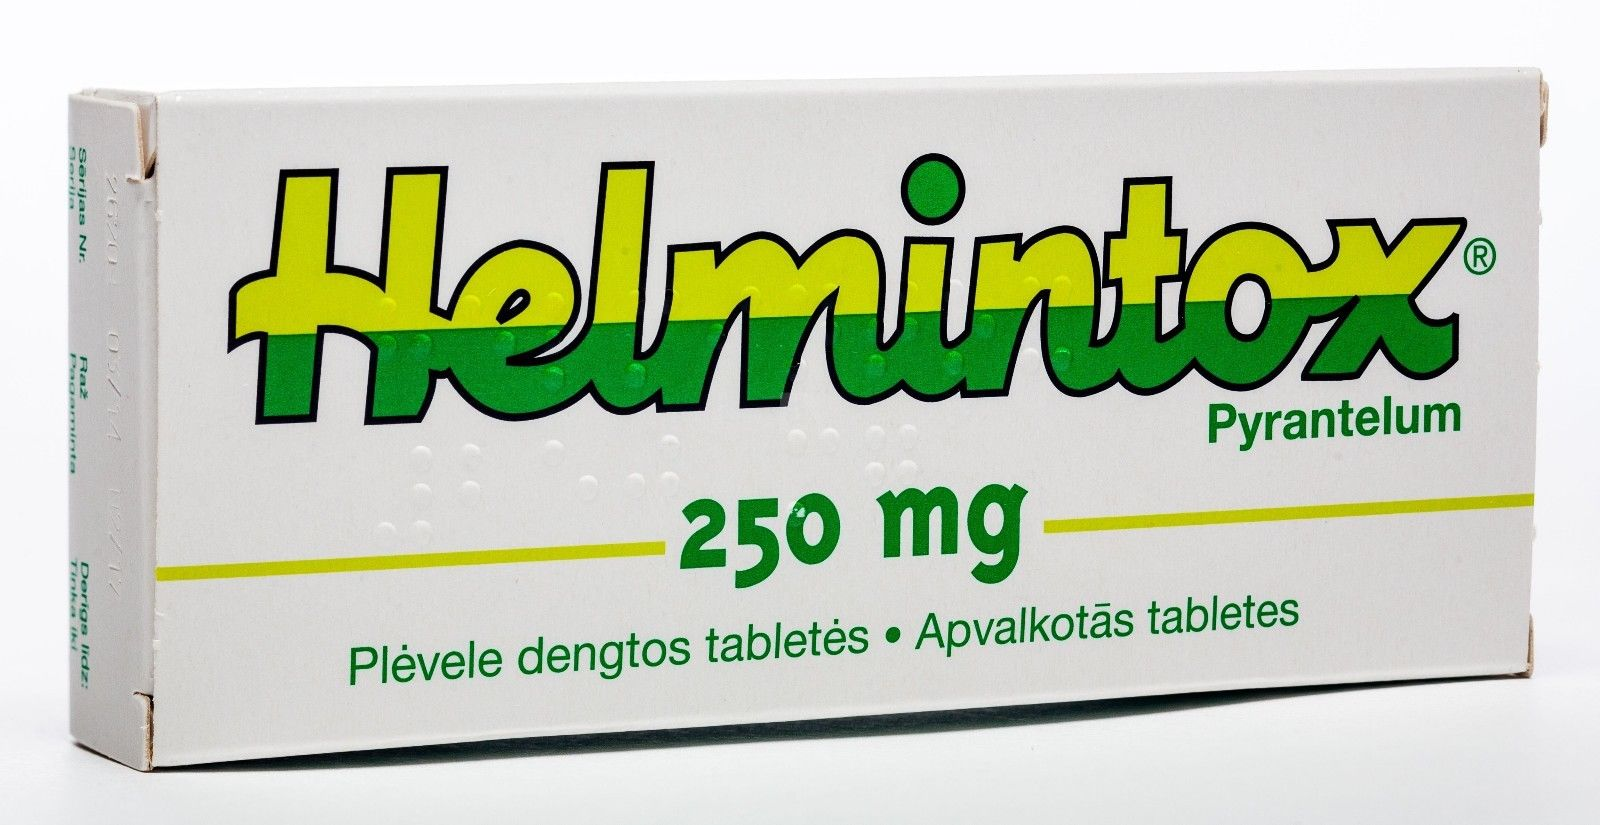 helmintox used to treat)